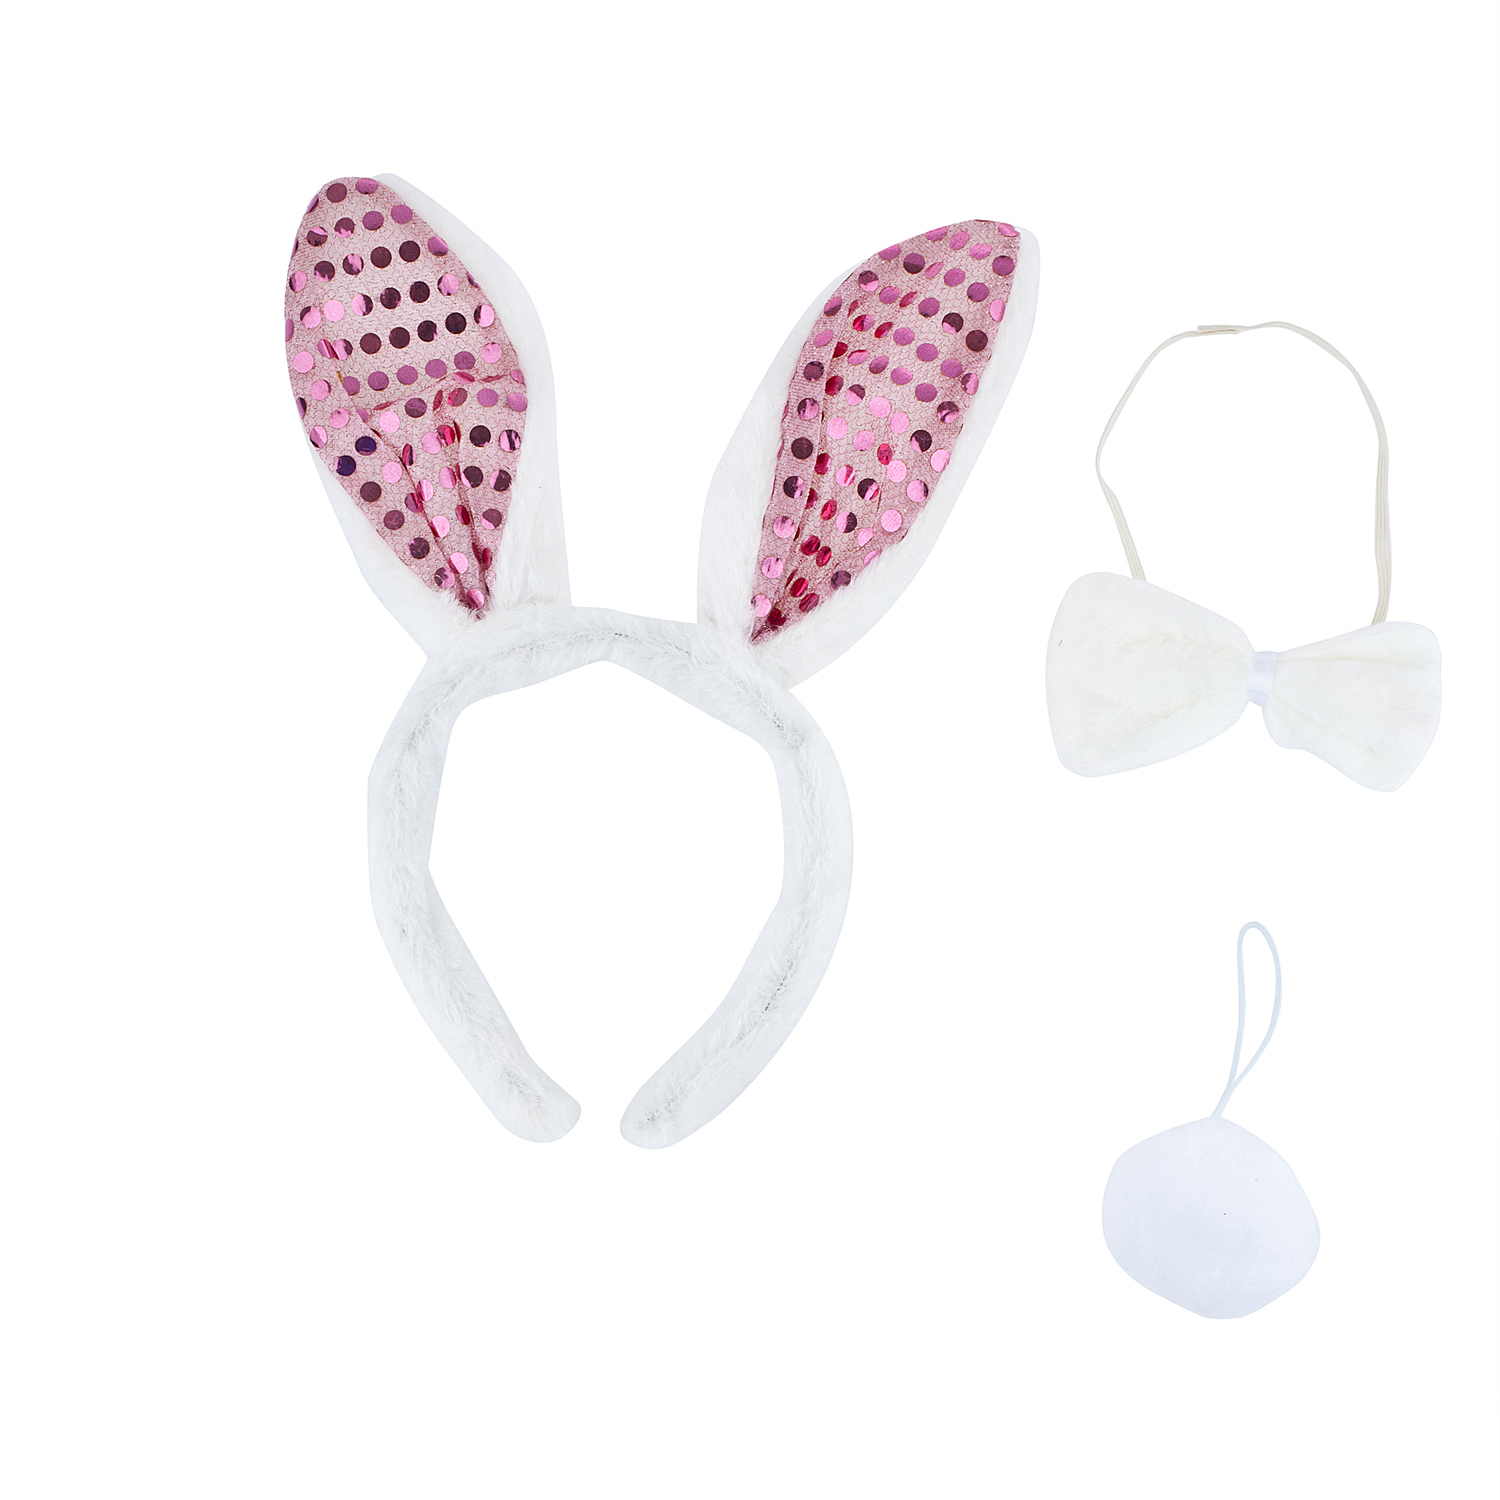 Lux Accessories Adult Easter Bunny Animal Halloween Costume Accessory Set 3pc